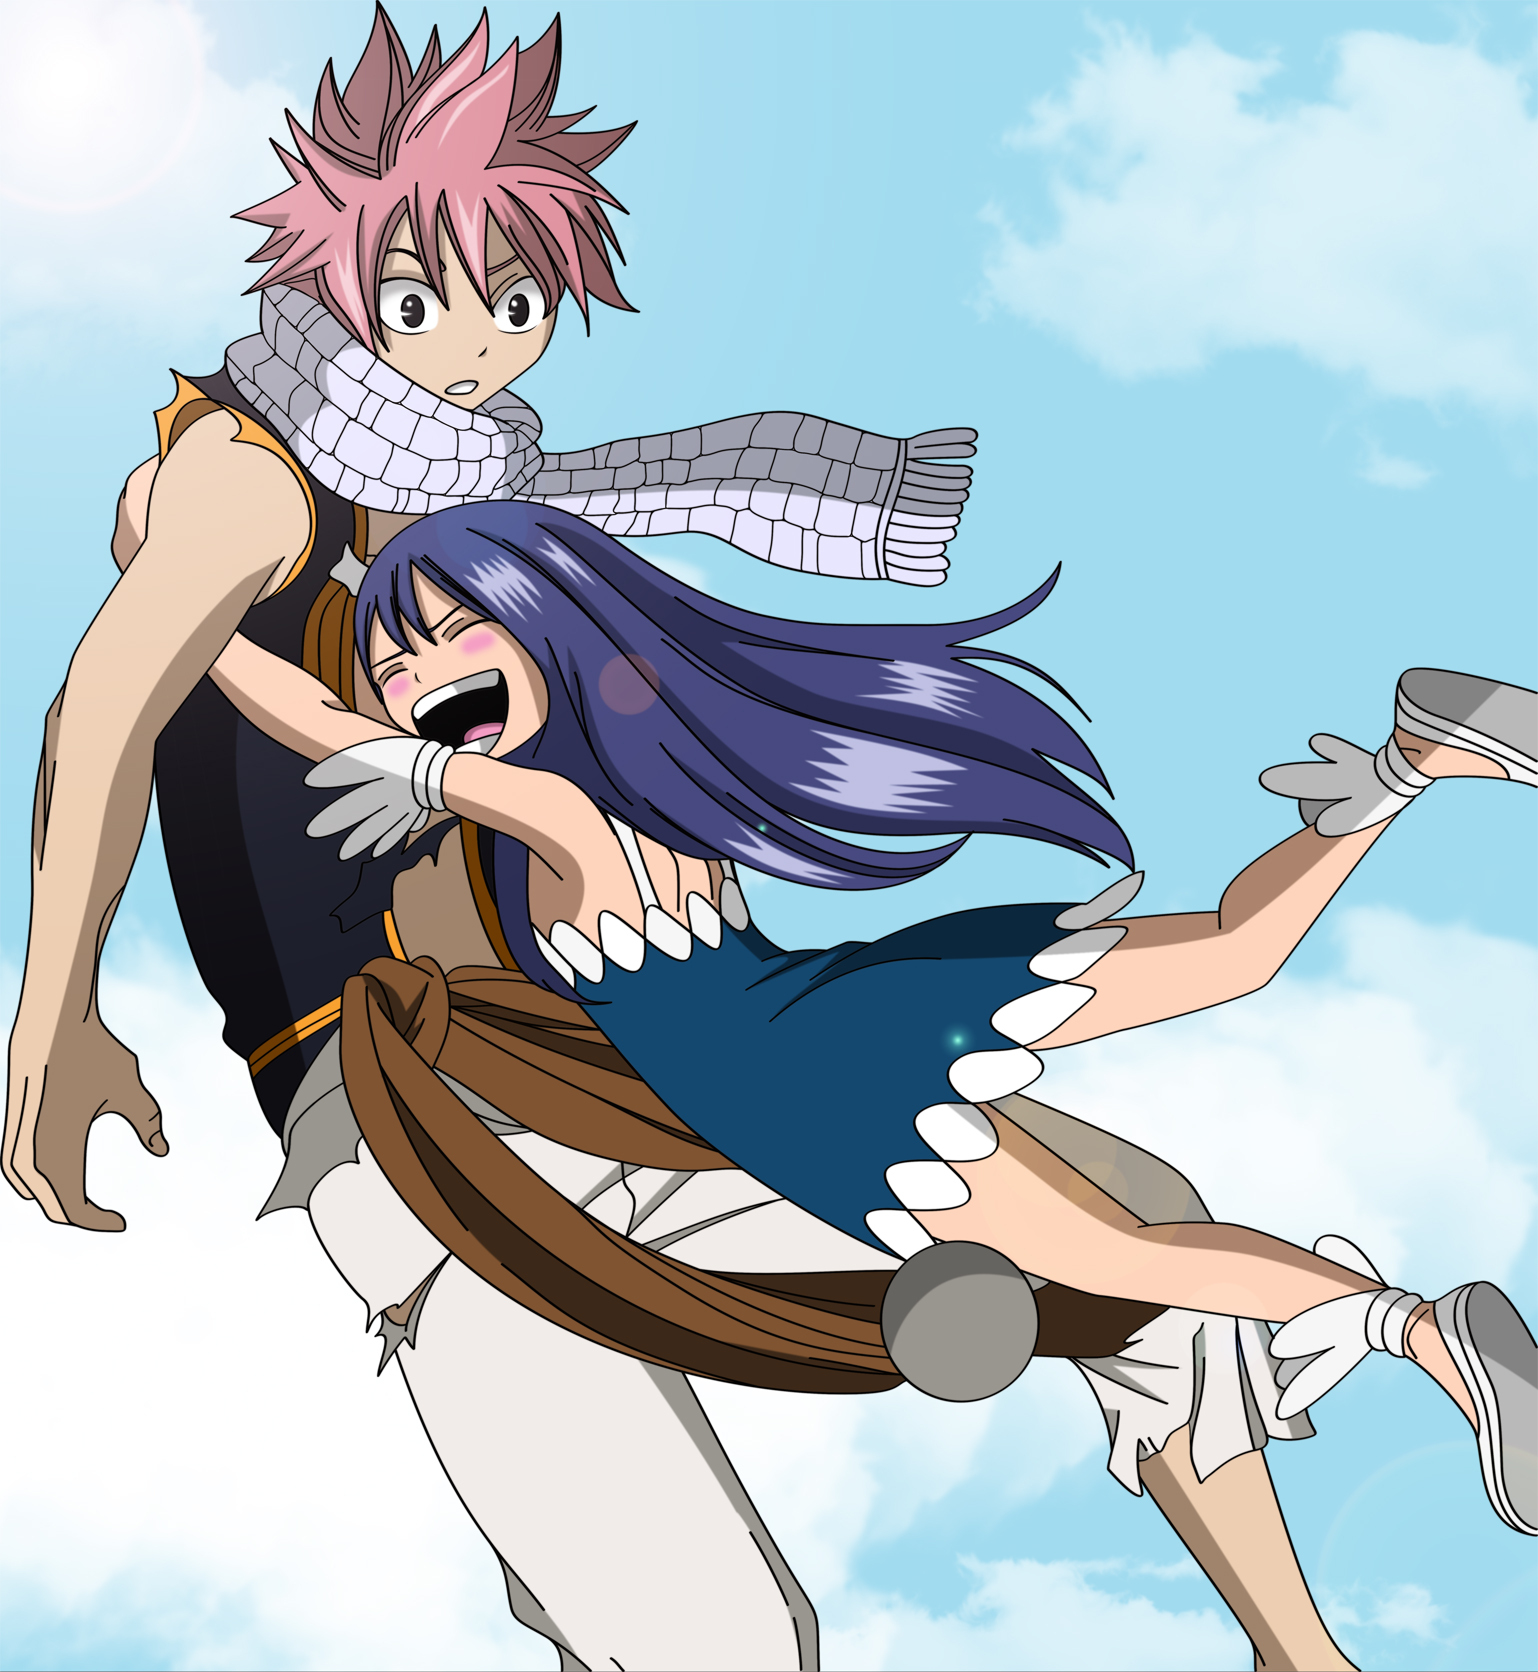 Which Couple do you like? Natsu,lucy,gray, or erza couple ...